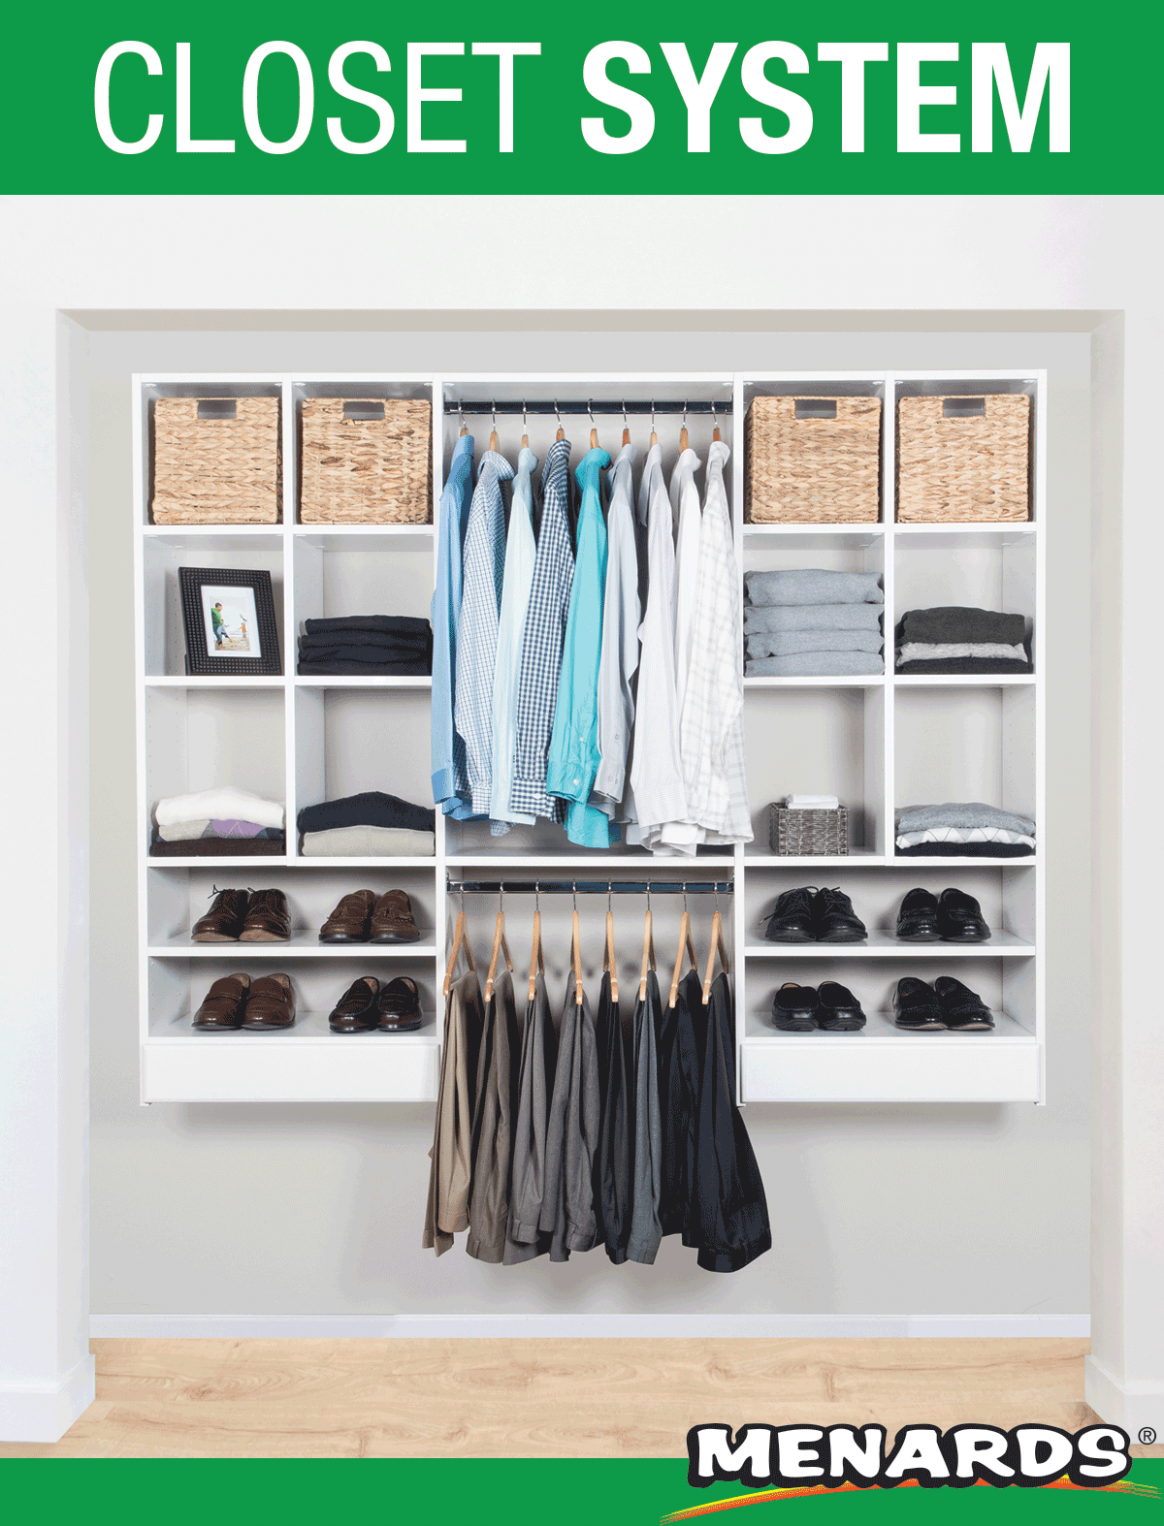 11 Best Storage and Organization images in 11 | Storage and ...